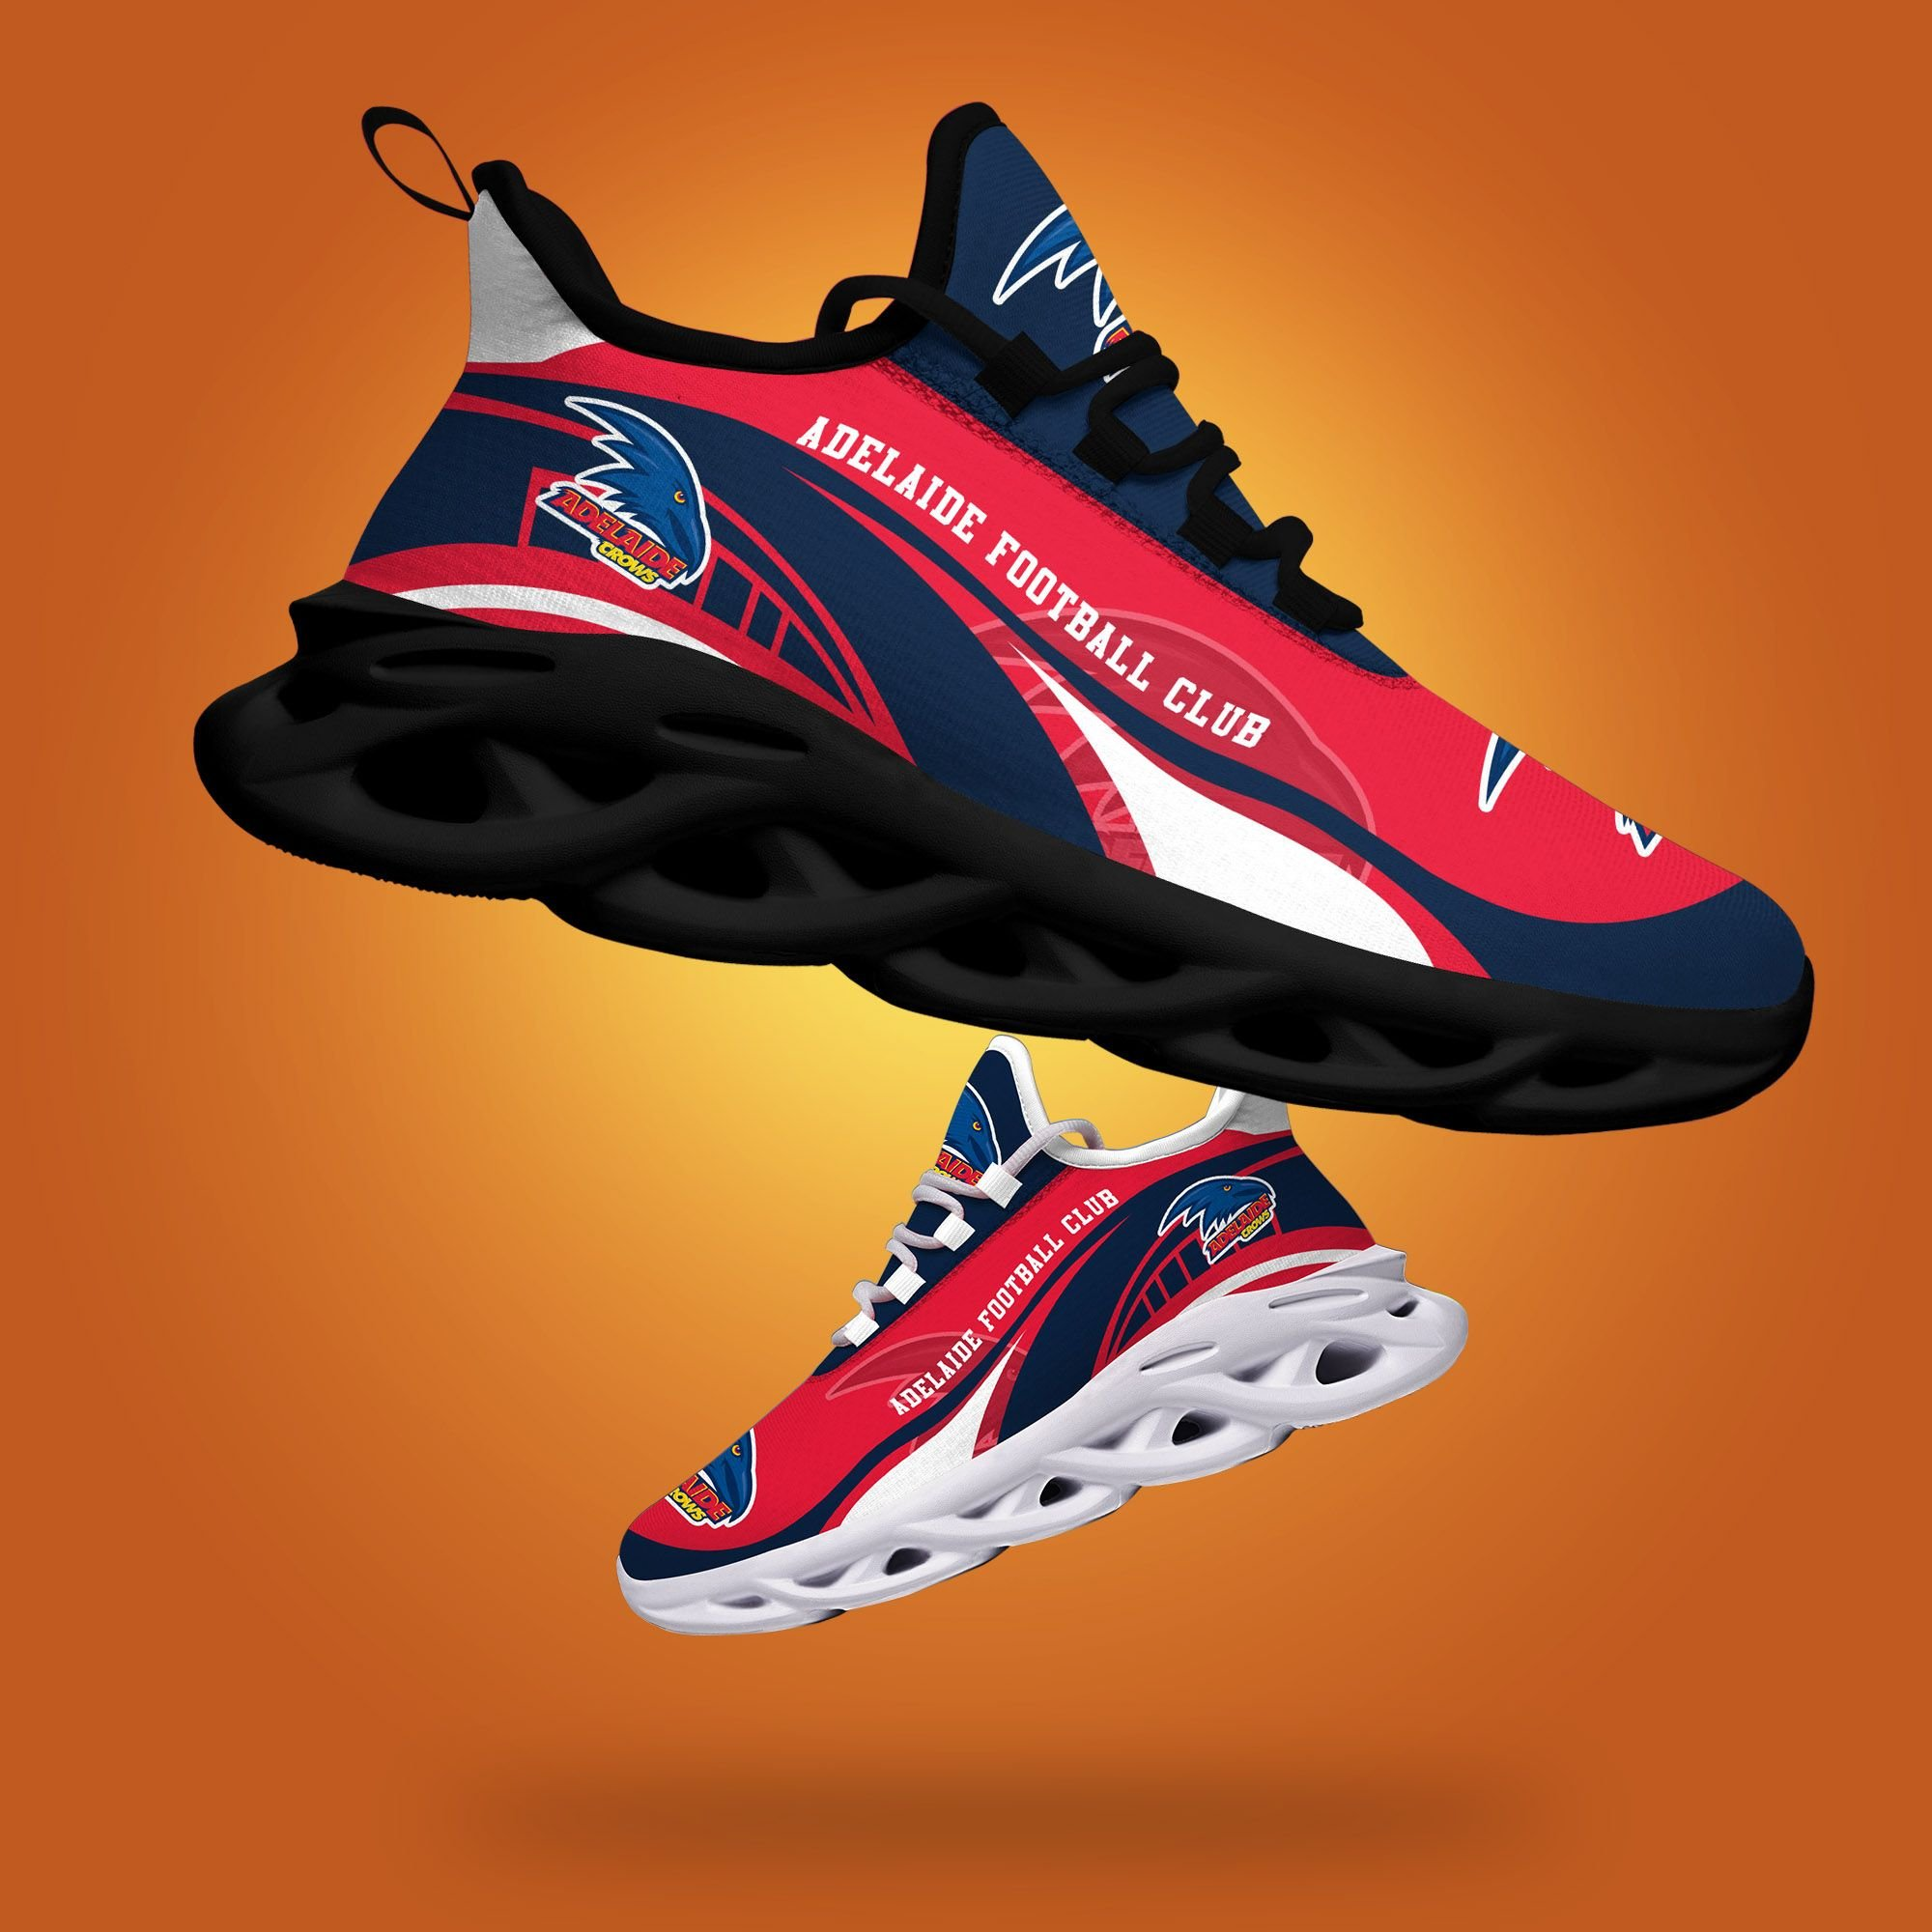 TOP CLUNKY MAX SOUL SHOES FOR AFL FANS